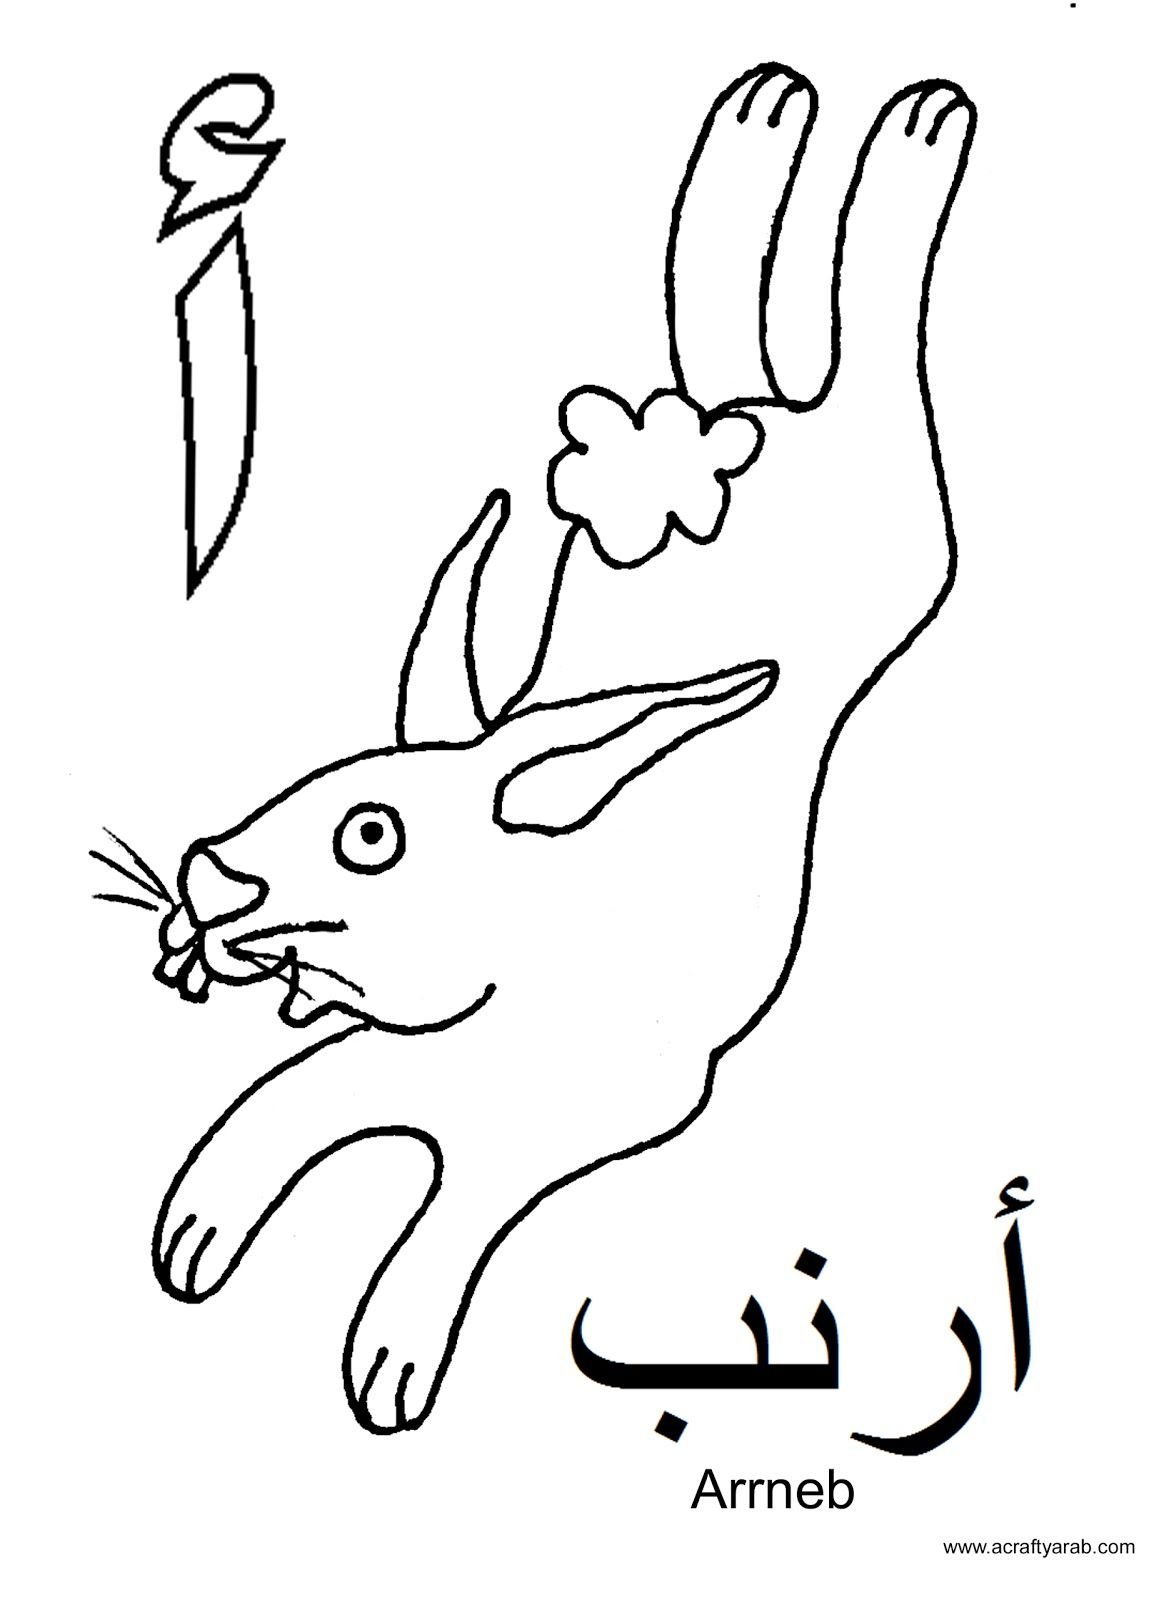 Arabic Alphabet Coloring Pages If Is For Arrnab